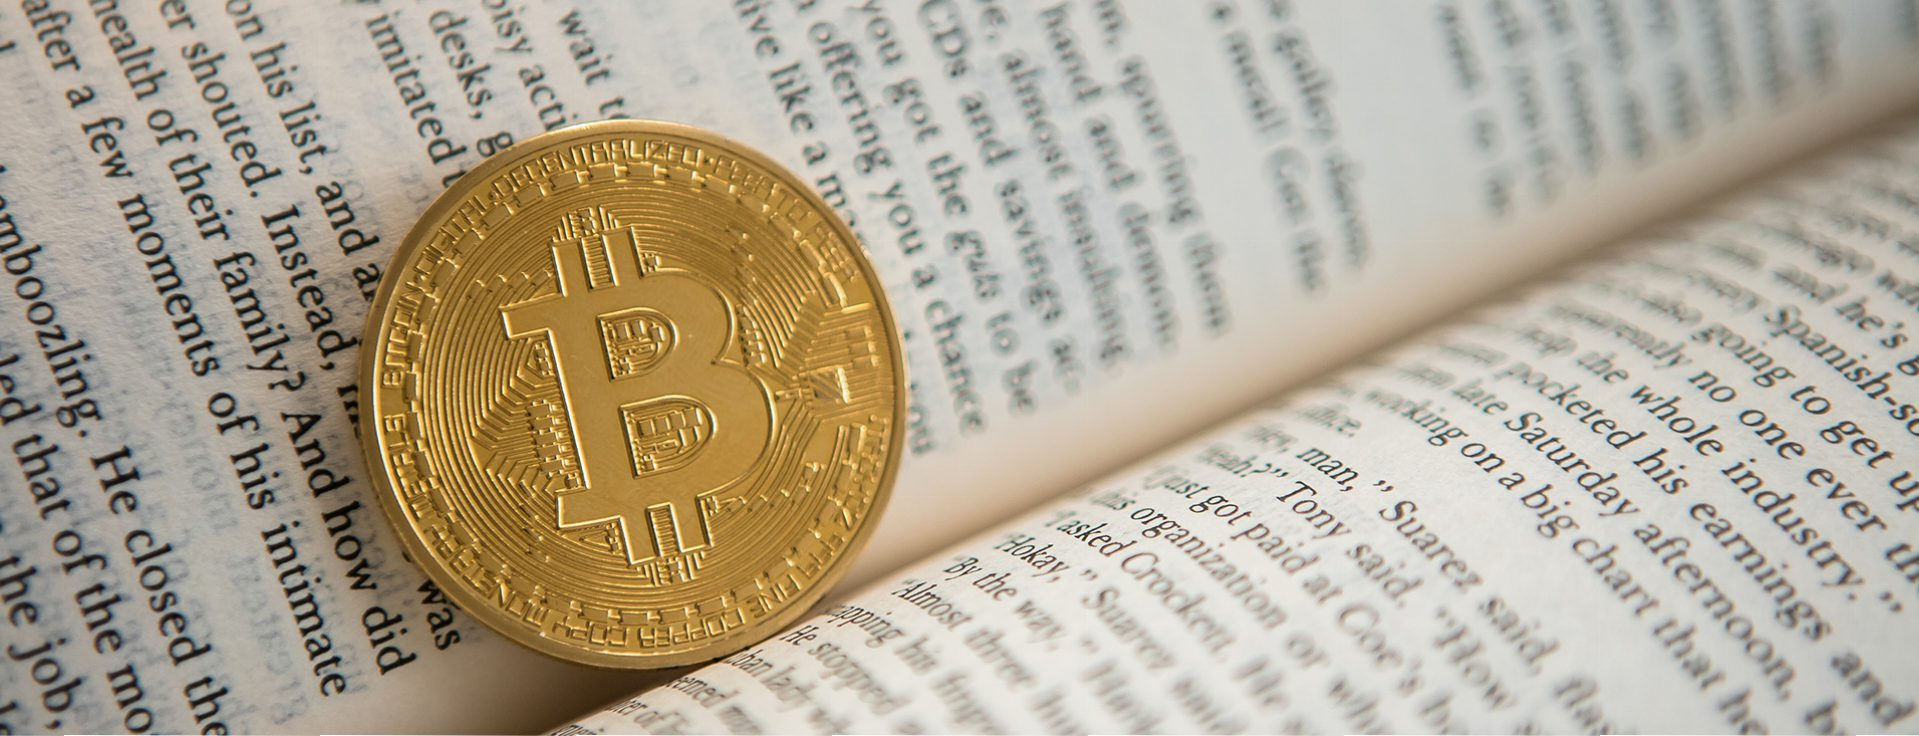 Bitcoin and Its Possible Impact on Insurance